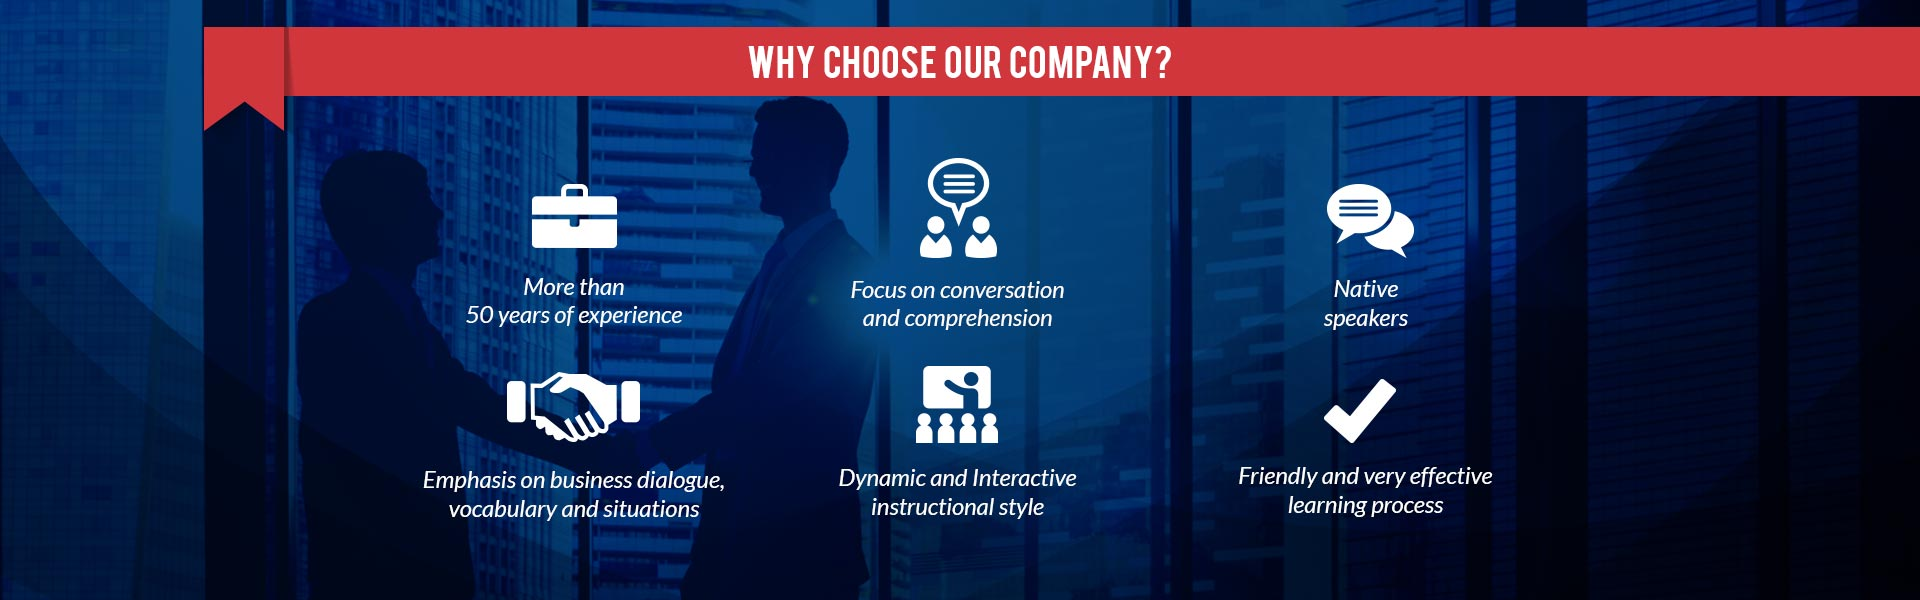 Why choose our company